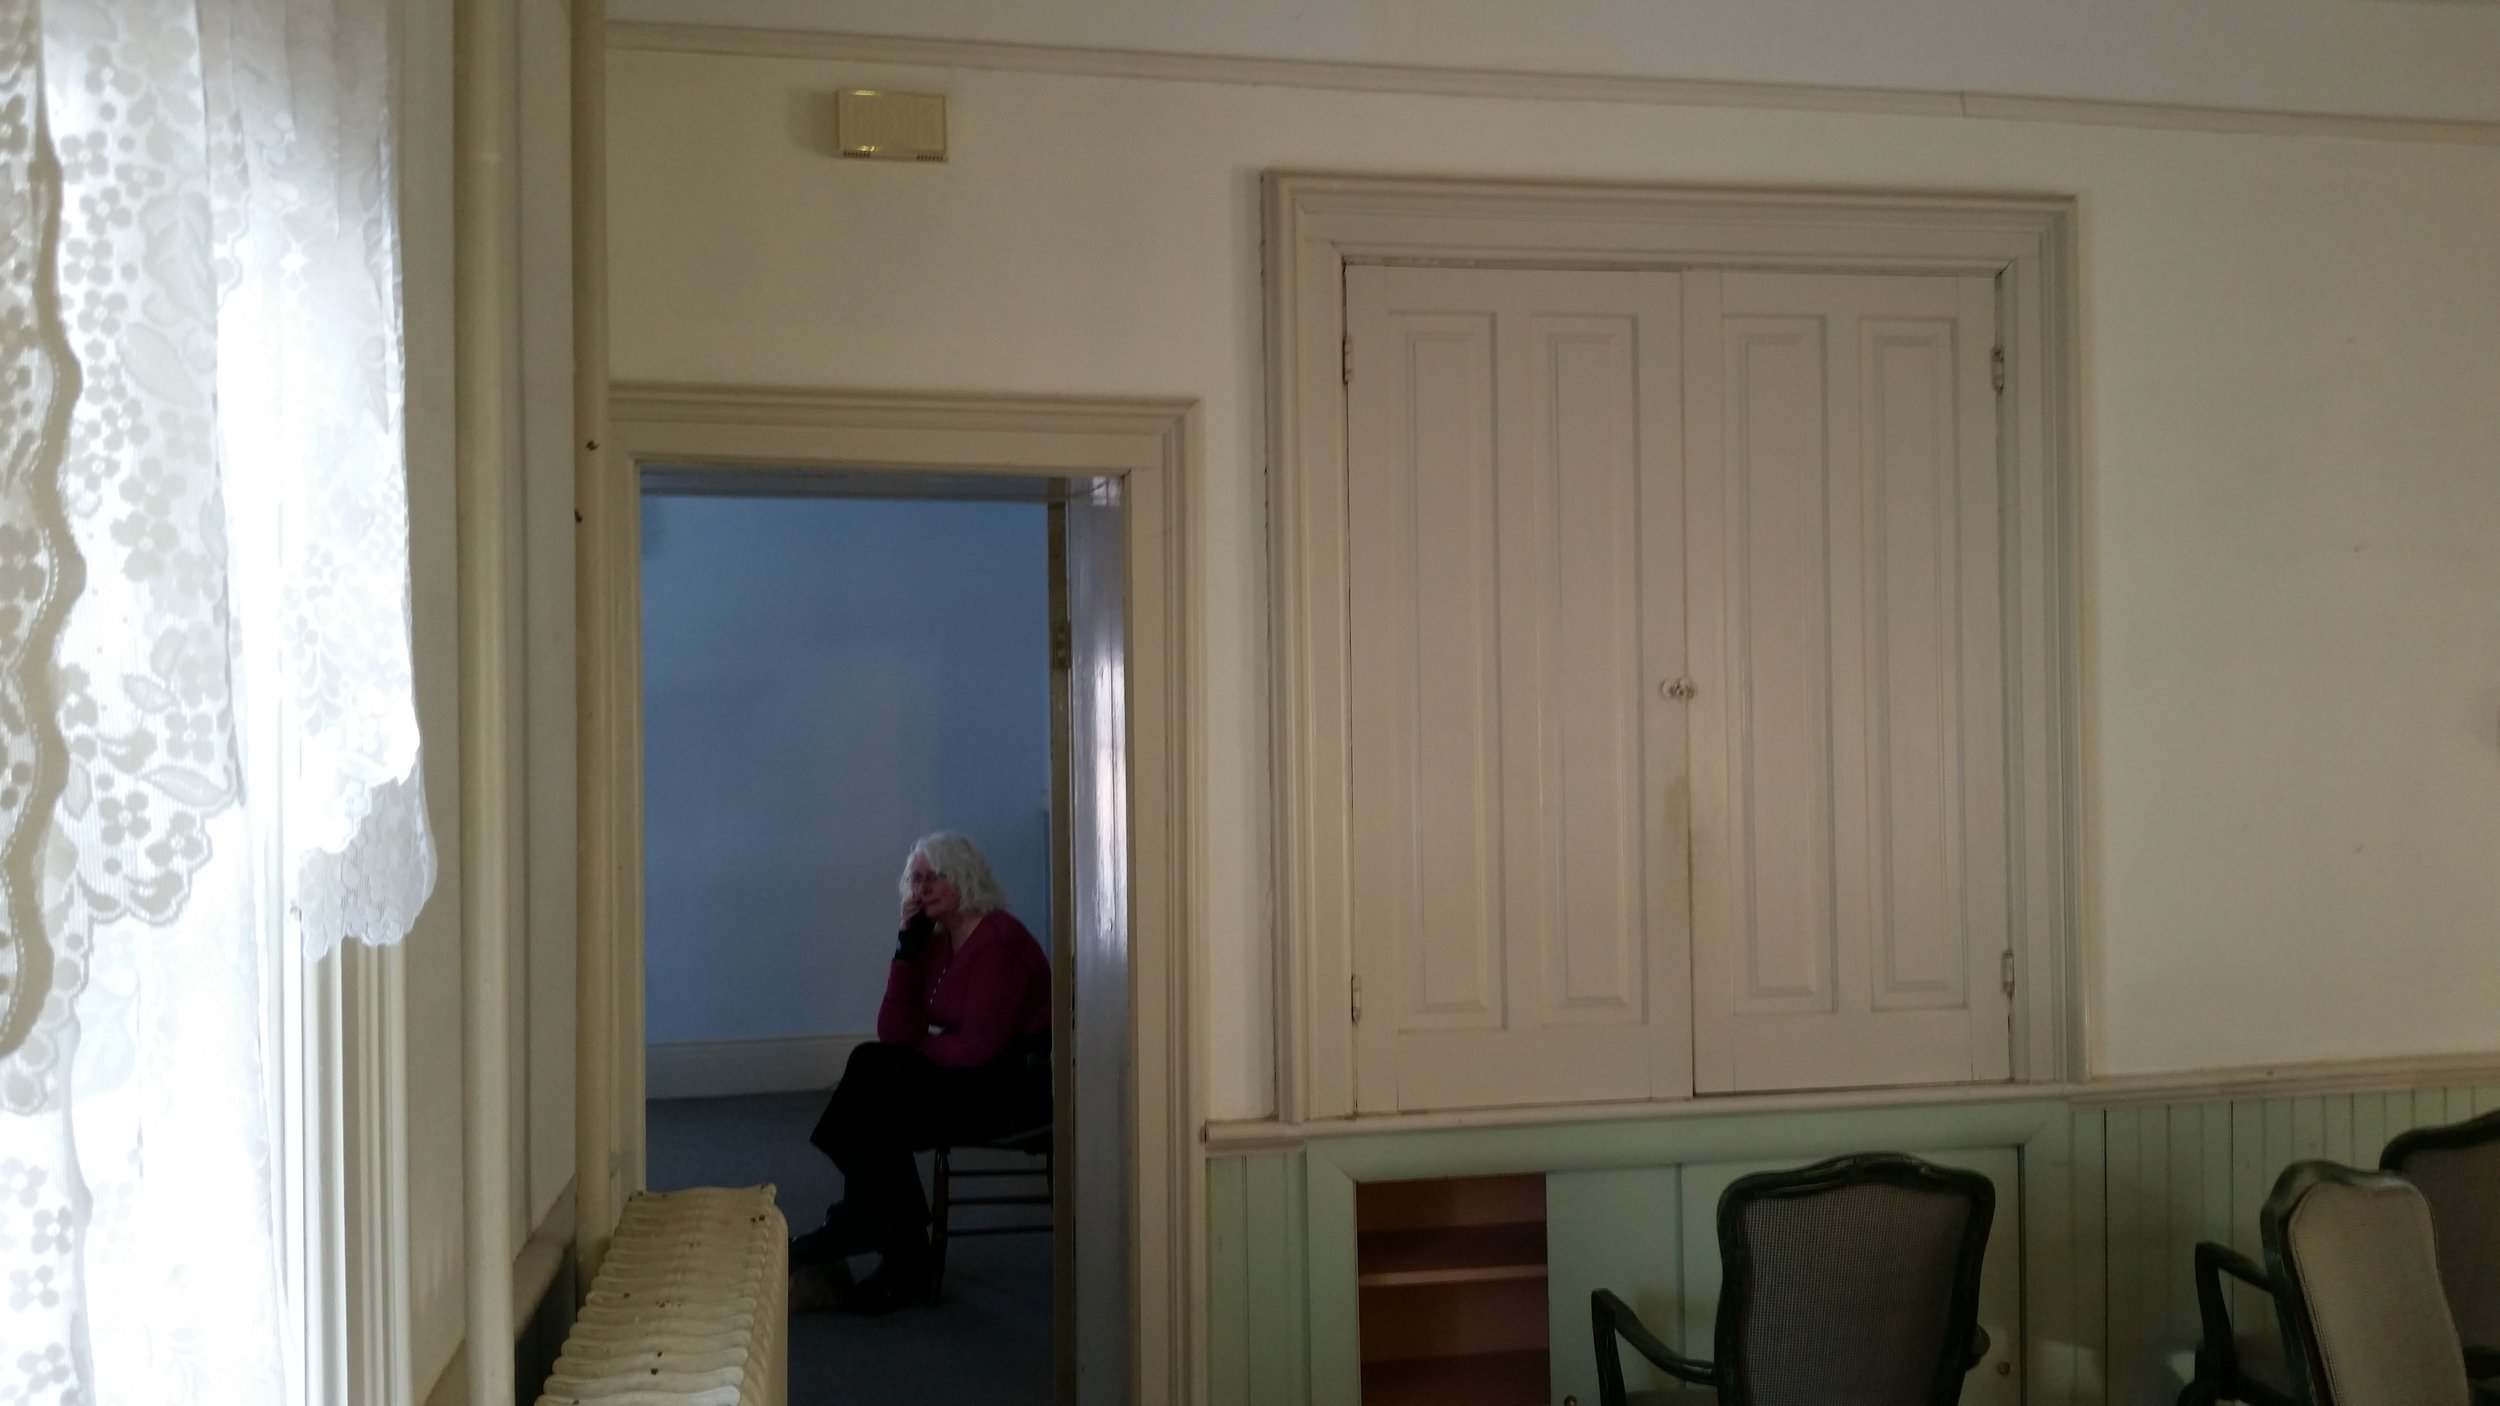 """Here is the original wall with a door to what became the library. The door jamb was about 18 inches wide and set at an angle. The lower section of the cabinet had doors that were plywood. We closed off both the door and the cabinet on the dining room side and used the space to make built in bookshelves in the library. We also removed the hot water radiator when we installed under the floor radiant heat. That's Marti sitting in the library wondering """"what are we going to do with this?"""""""